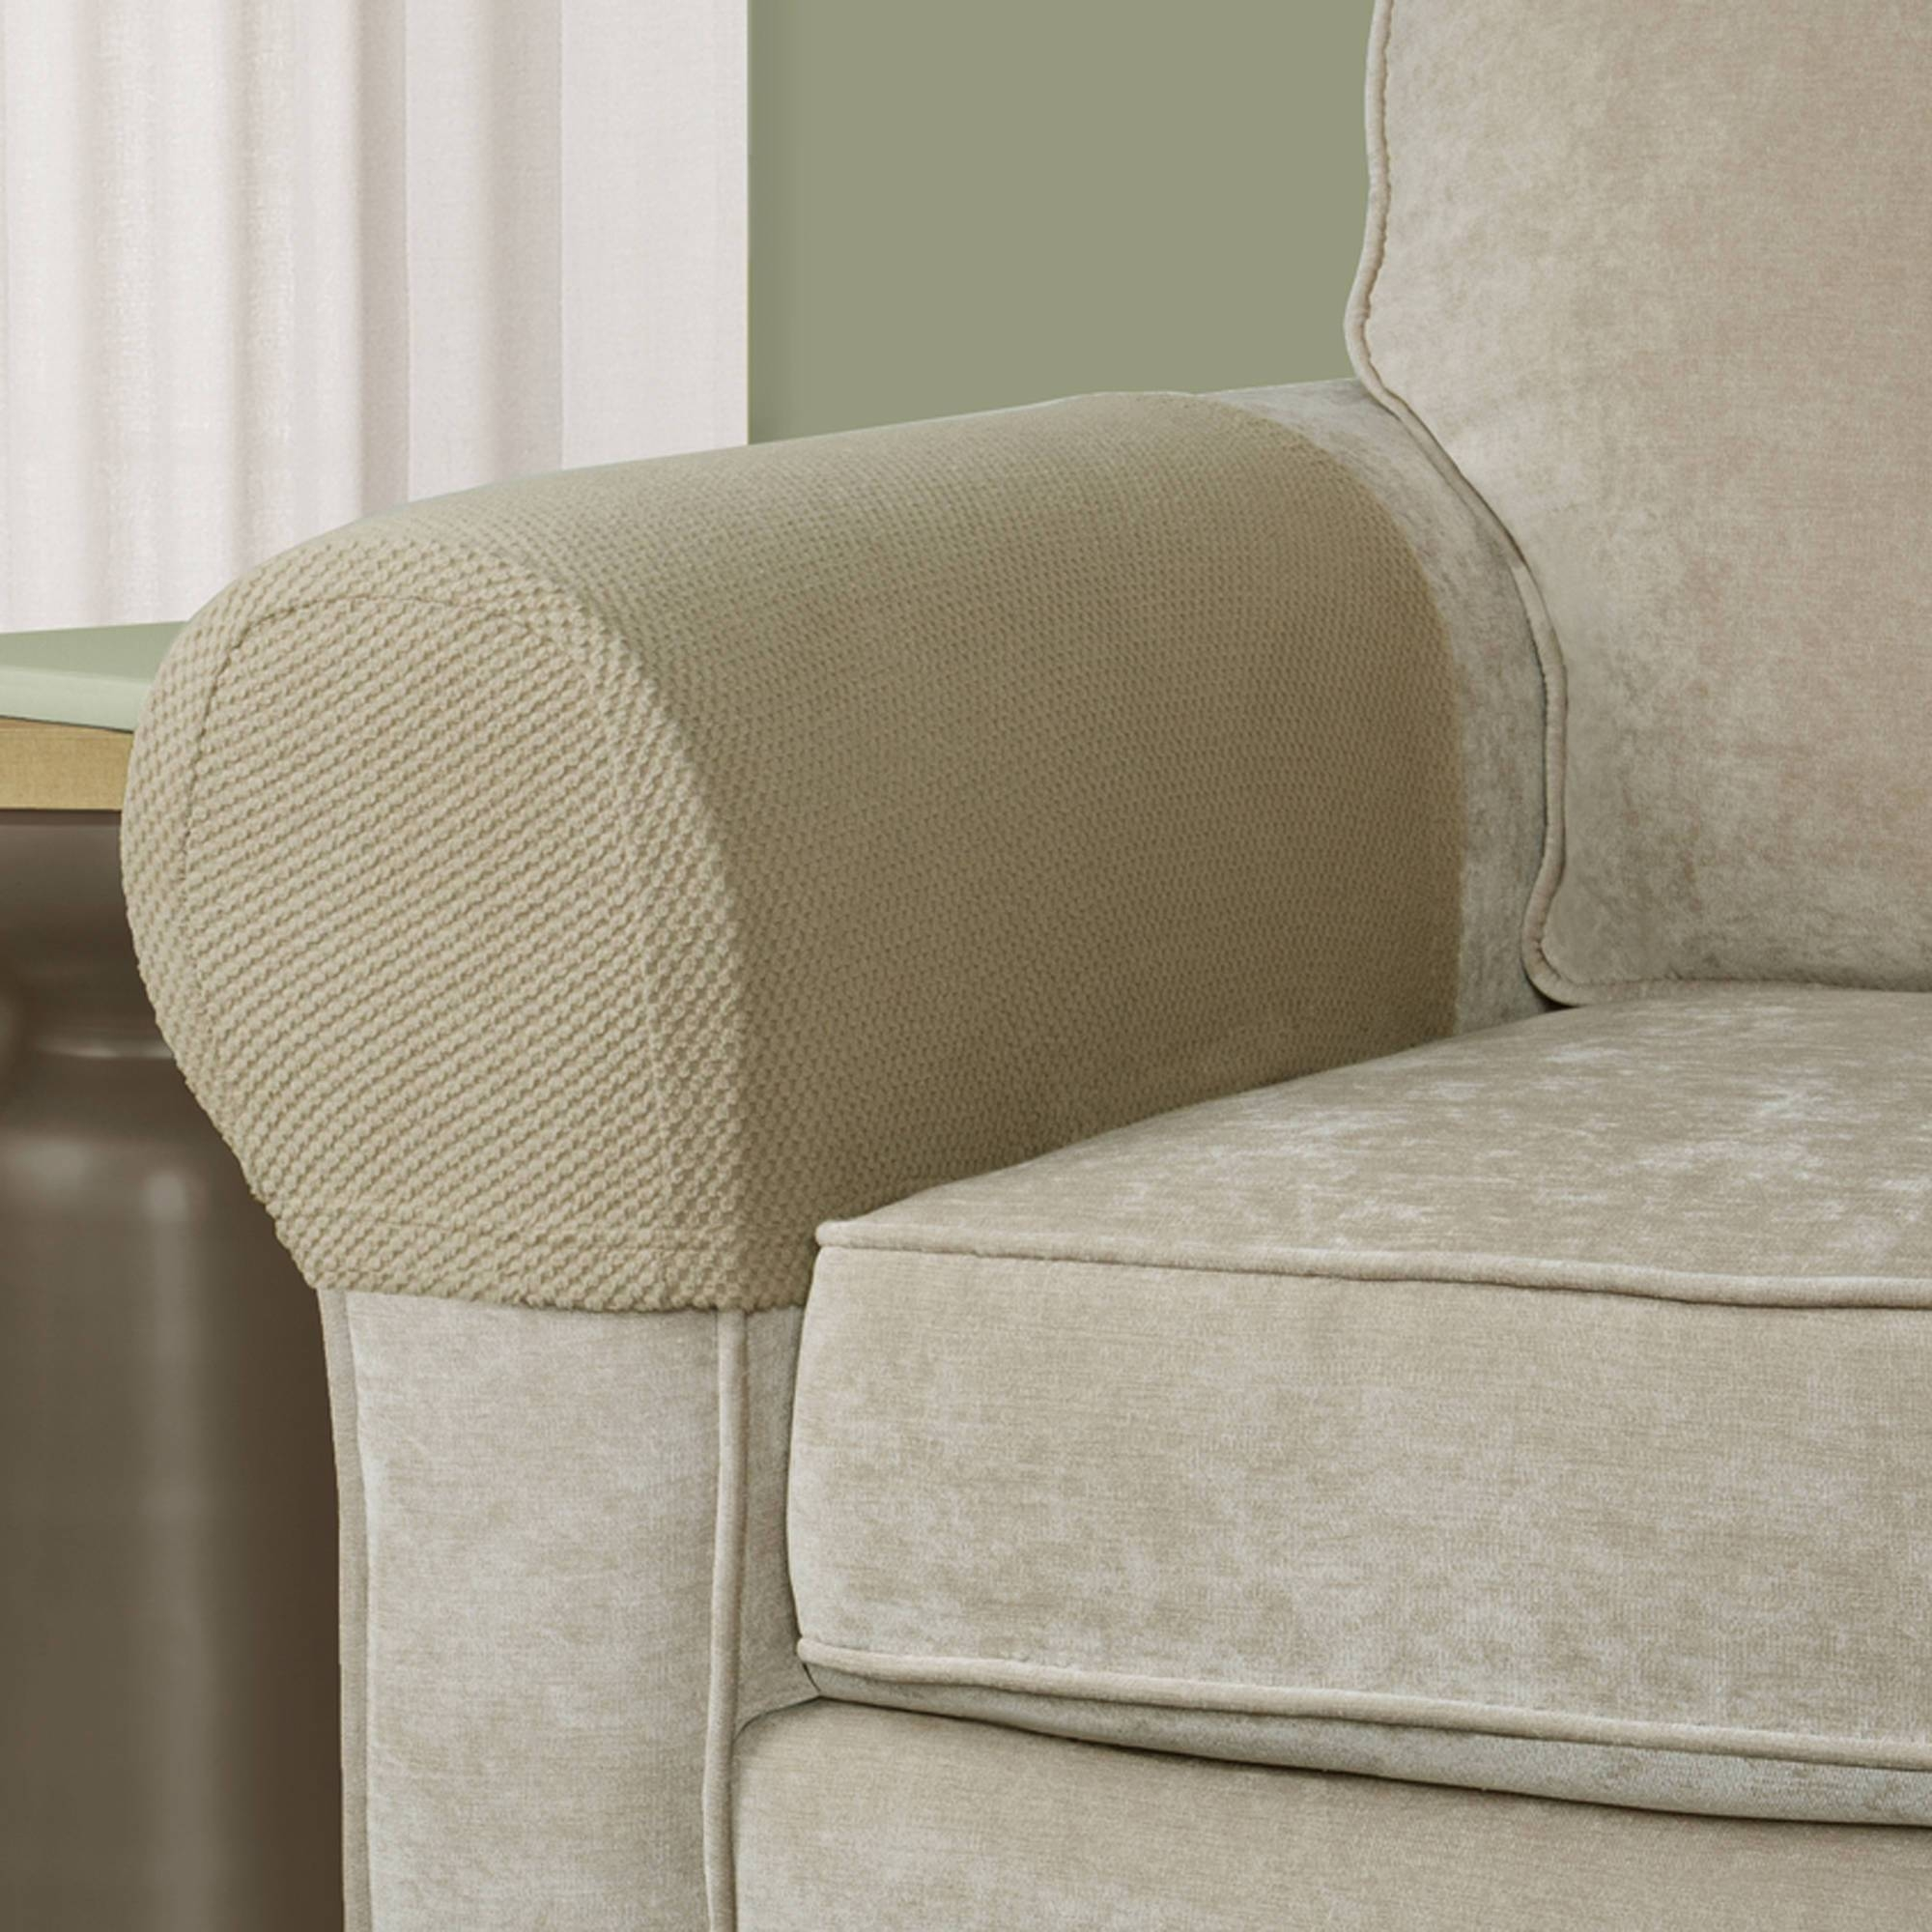 Mainstays Pixel Stretch Fabric Furniture Armrest Covers – Walmart Intended For Sofa Settee Covers (View 20 of 30)